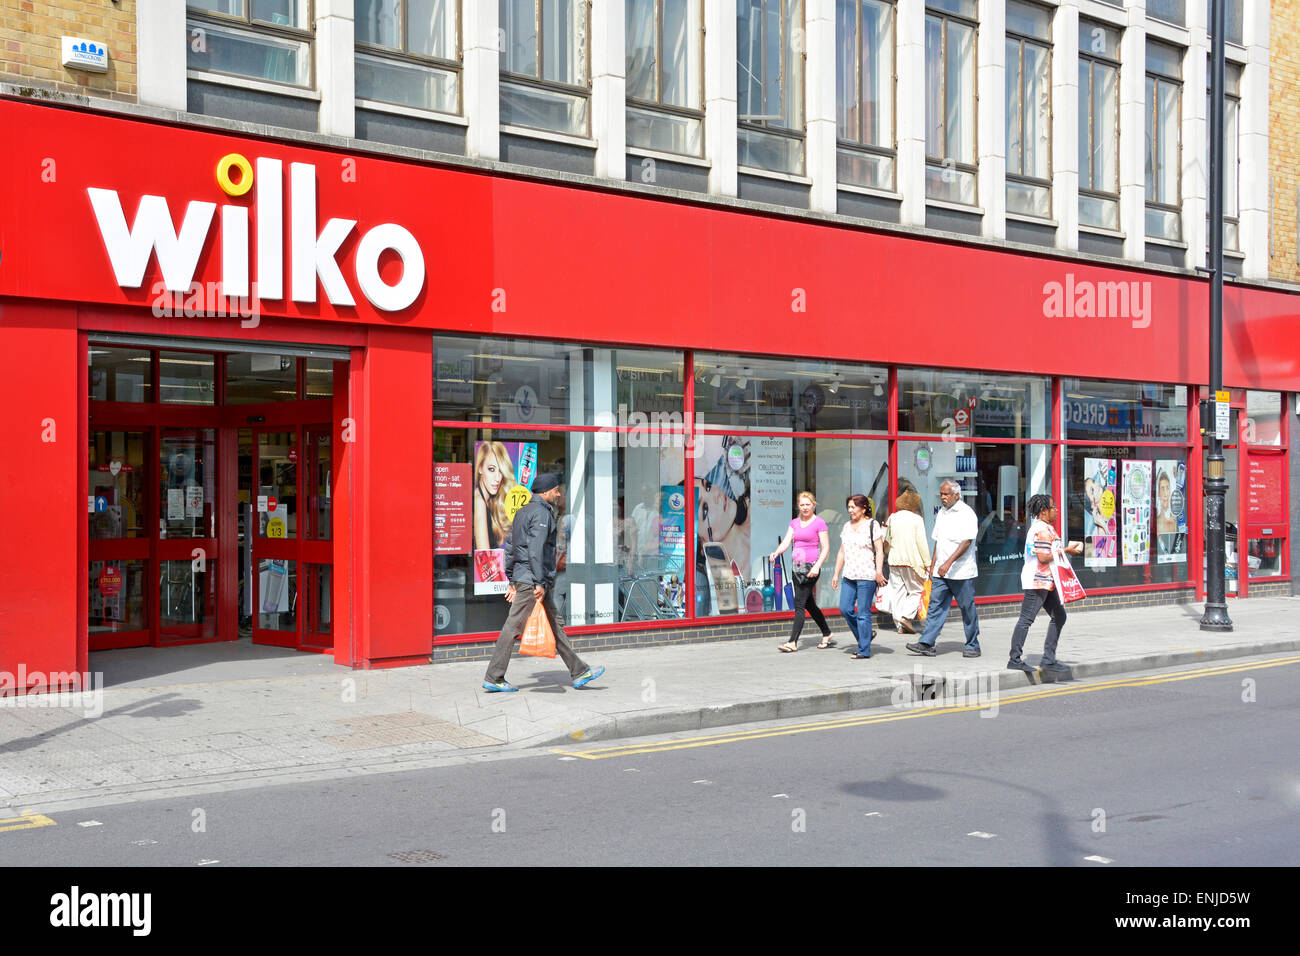 Wilko store front and windows (was known as Wilkinson Hardware Stores) - Stock Image